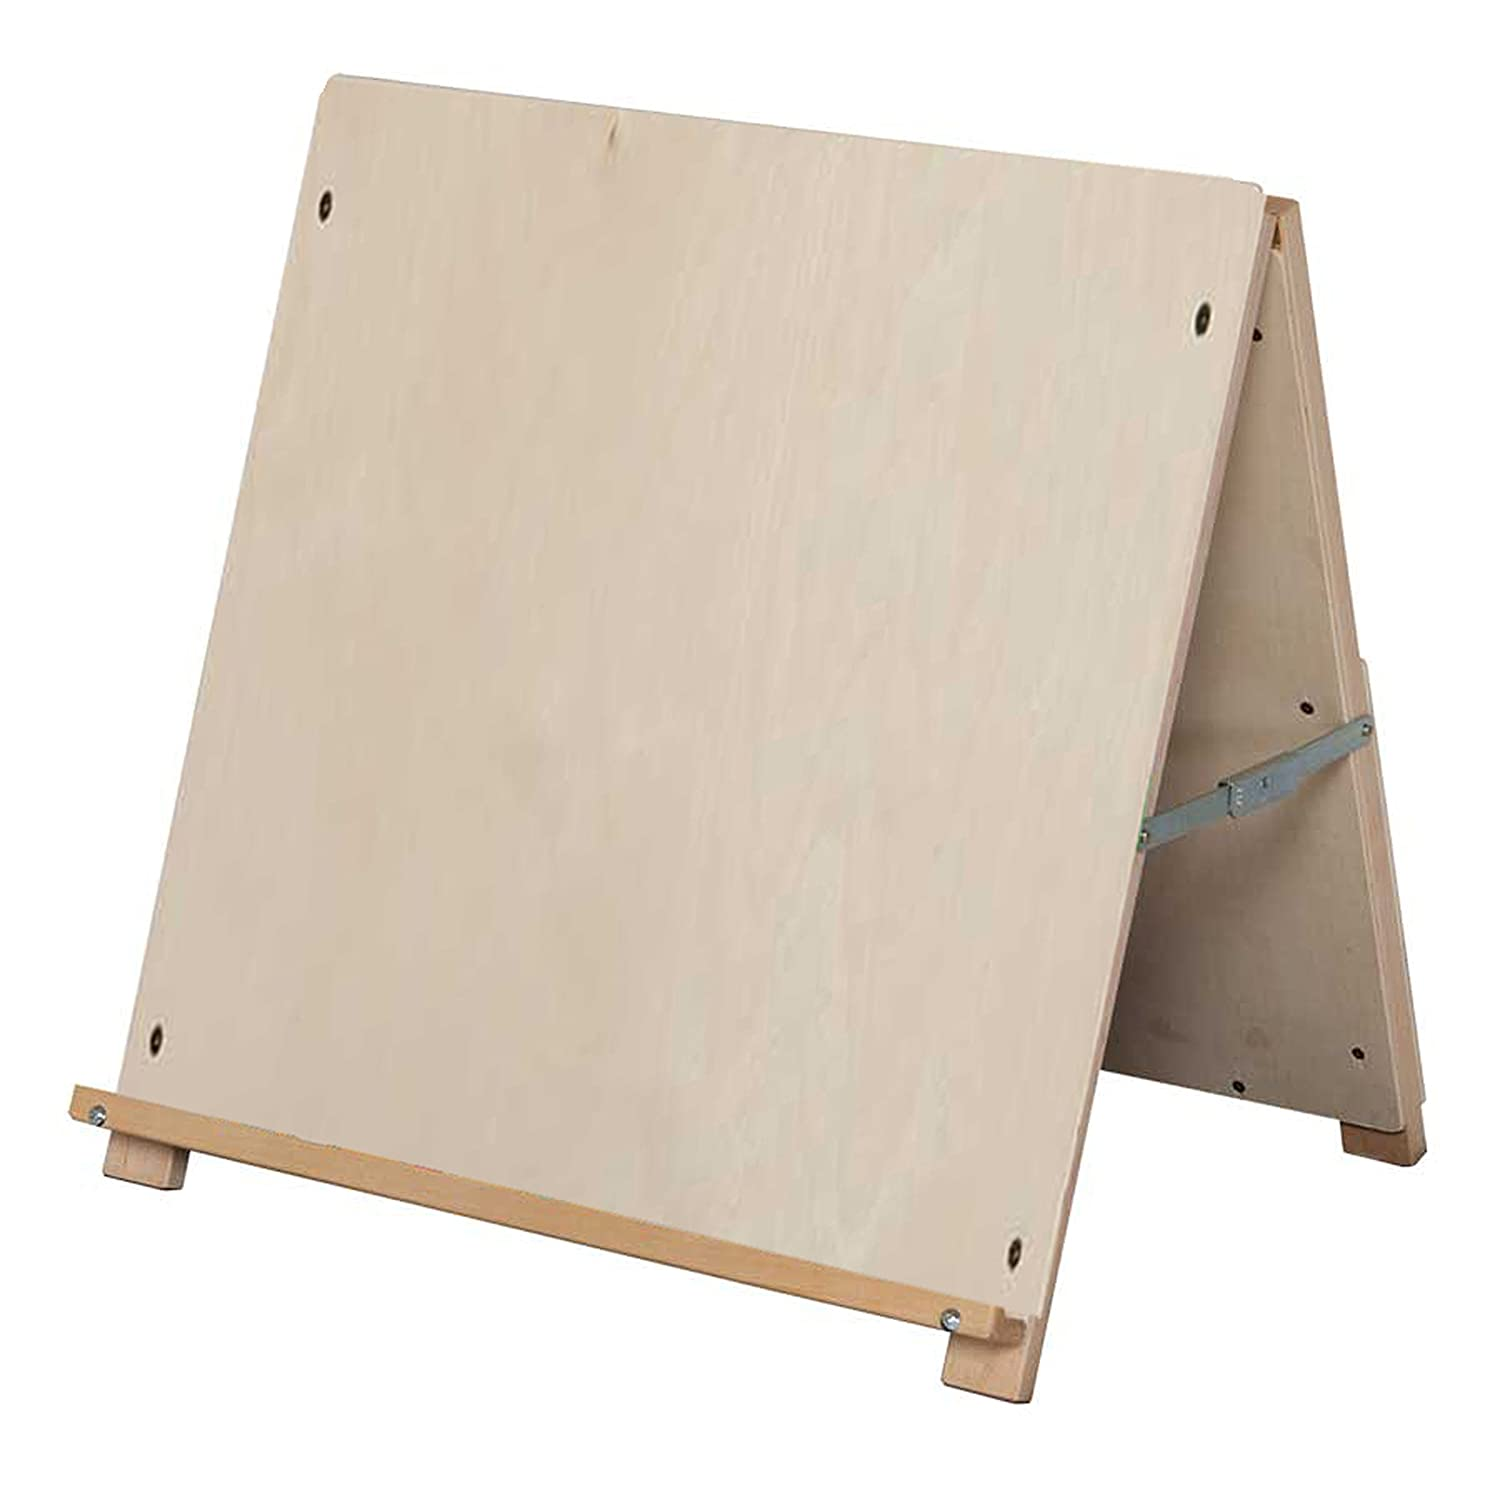 of table top stortford coopers hobbies easel leisure